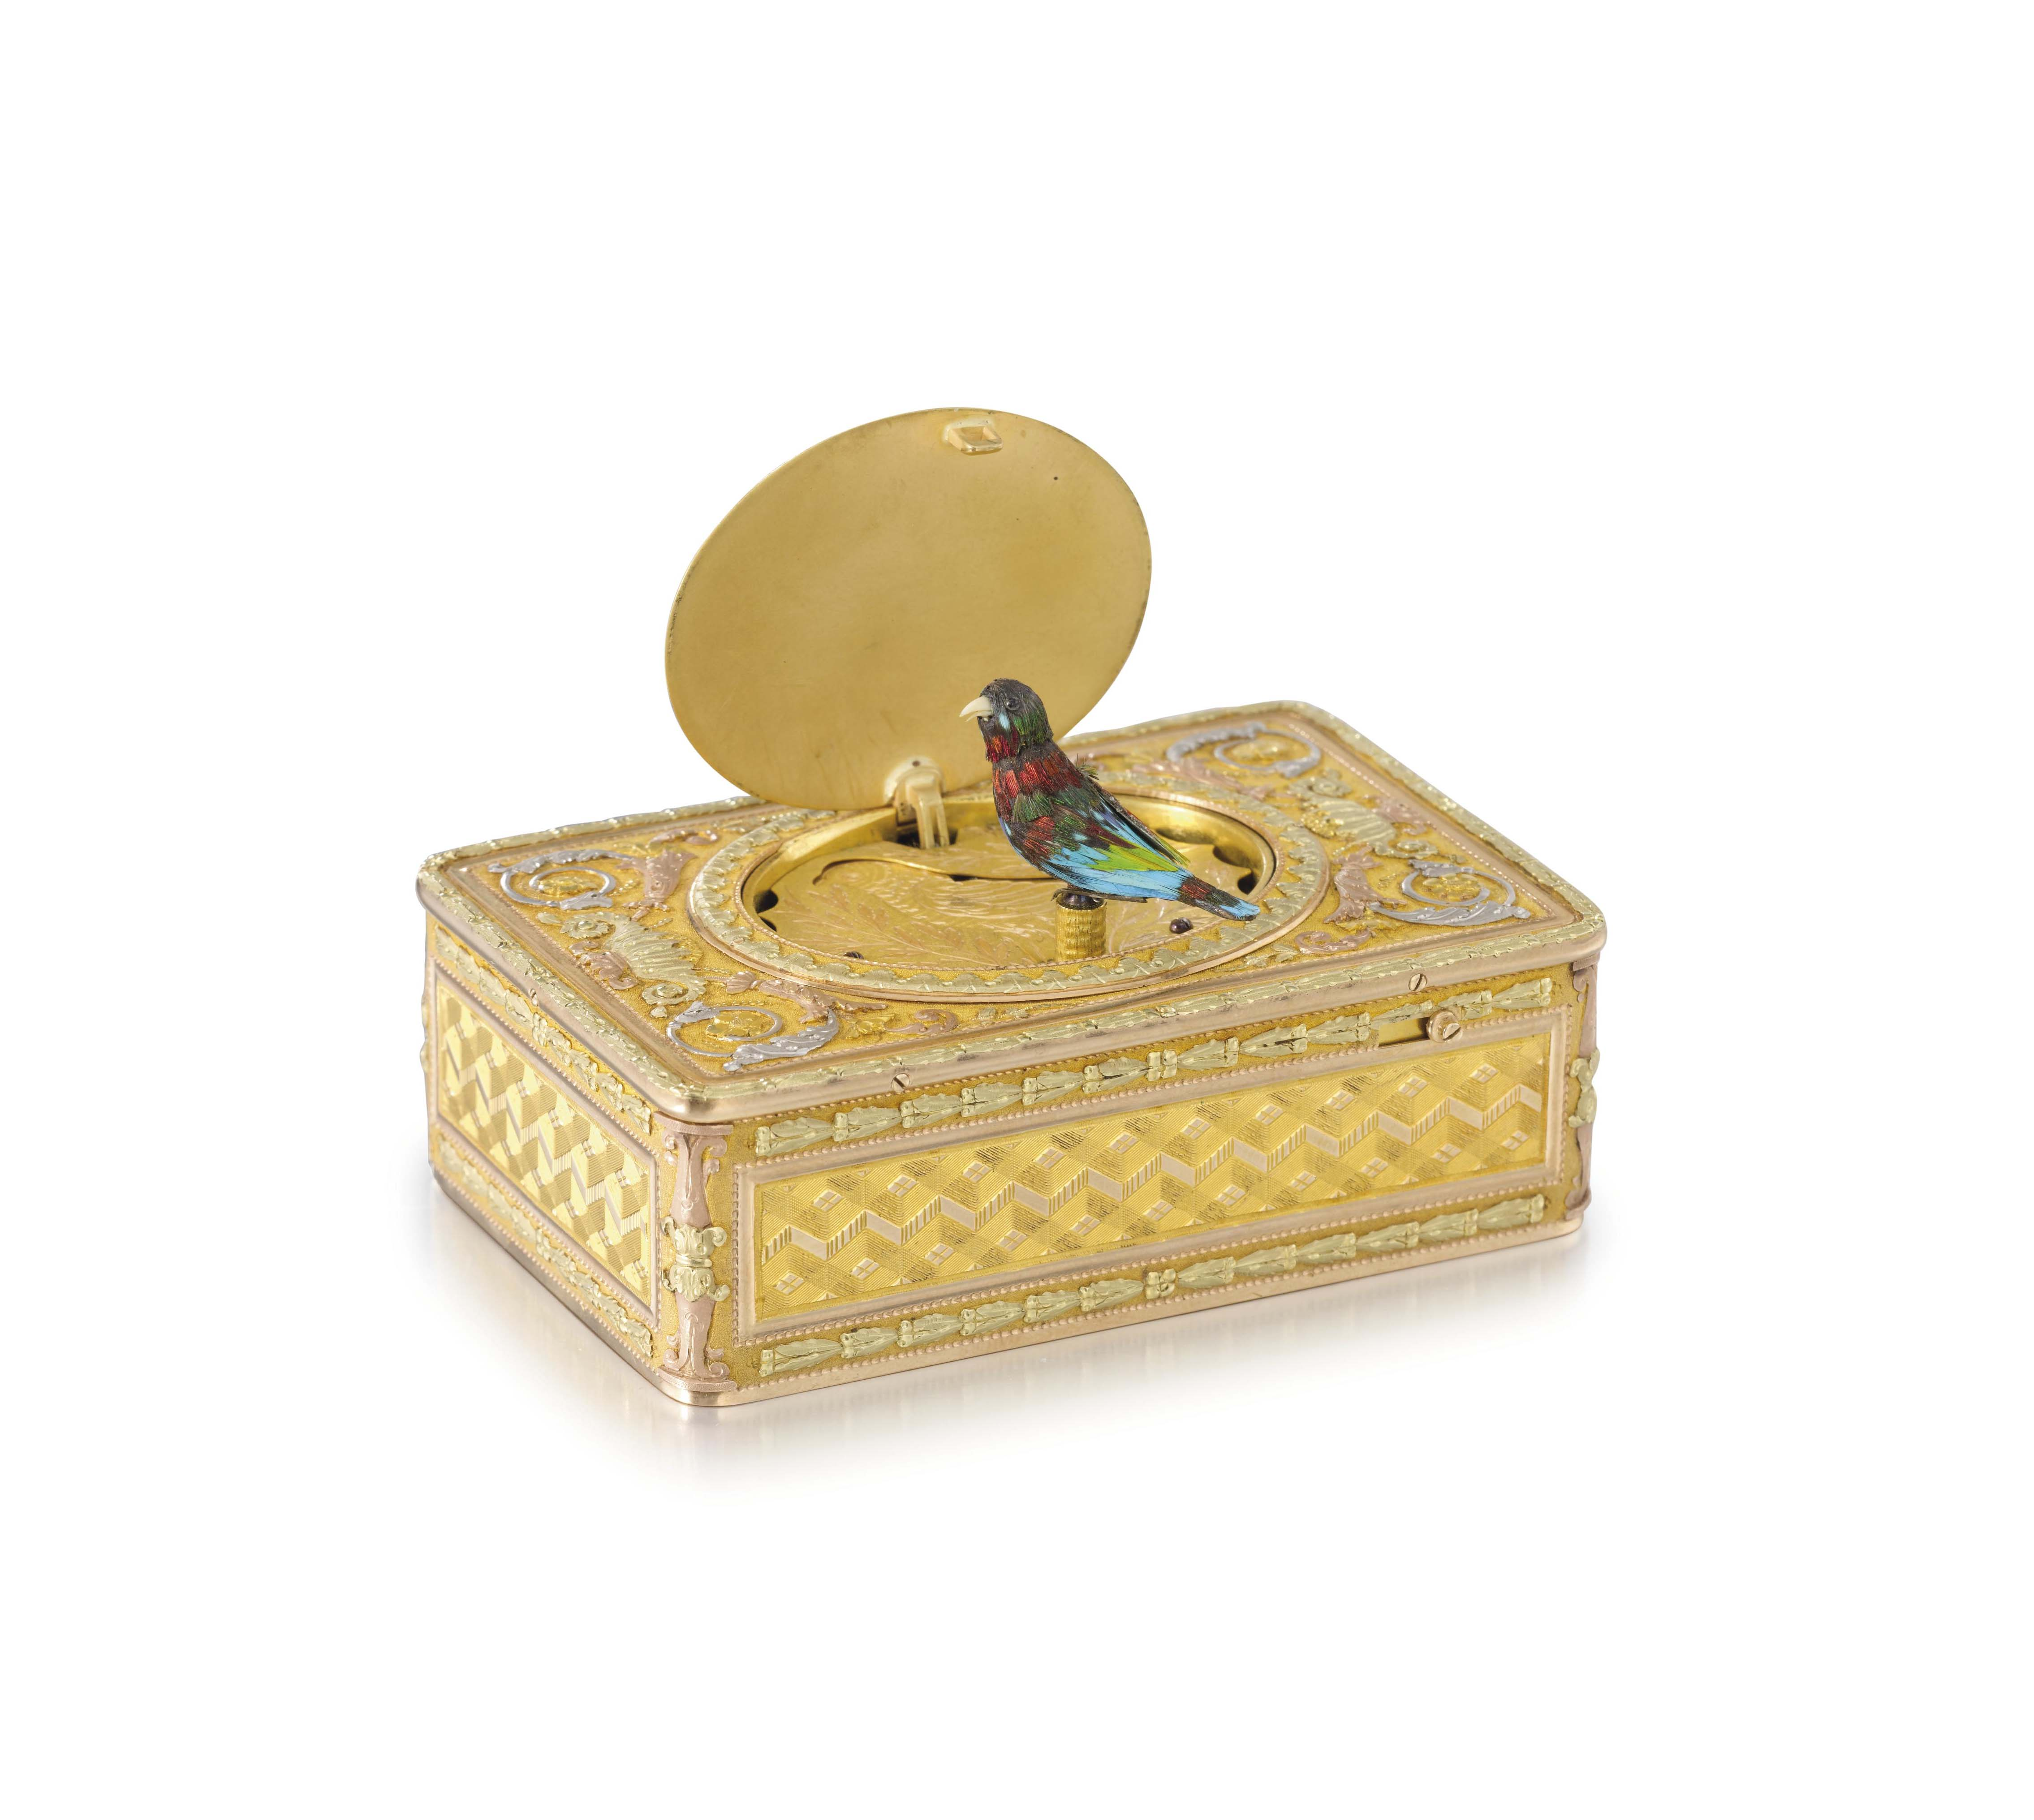 Freres Rochat and Joly & Chenevard. An extremely fine and rare 18K three colour gold and enamel musical singing bird box, the enamel in the manner of Jean-François-Victor Dupont